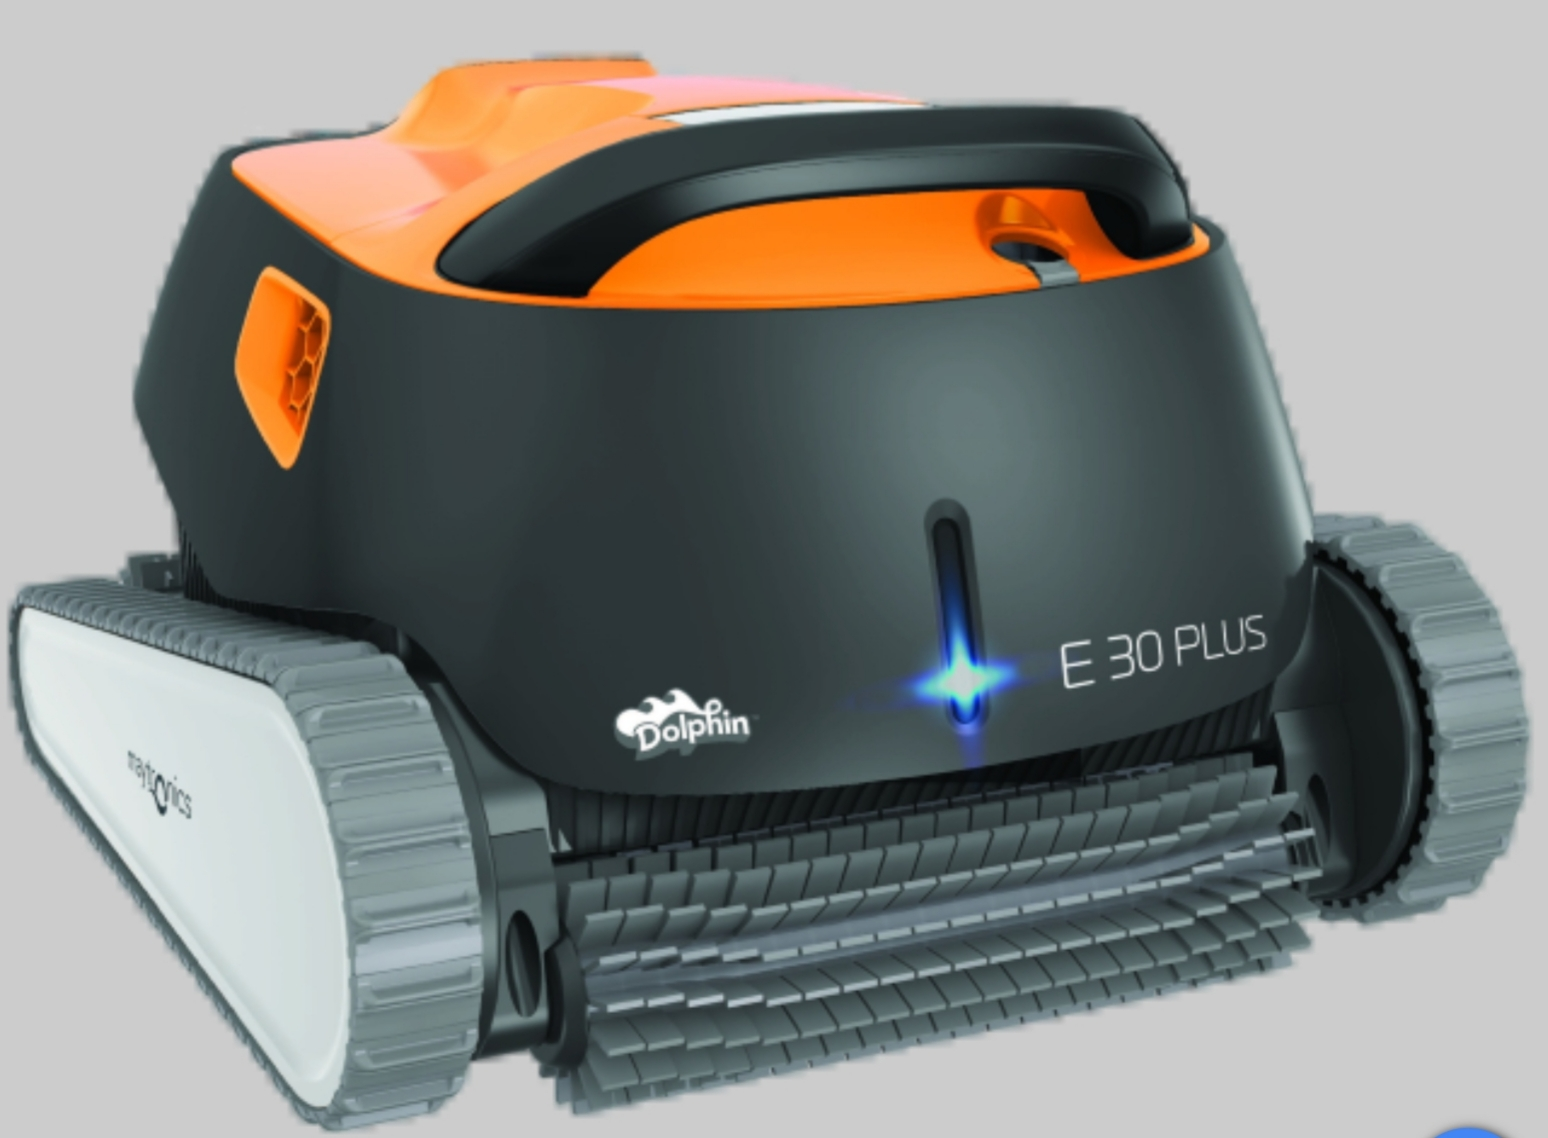 dolphin-robotic-pool-cleaner-e30